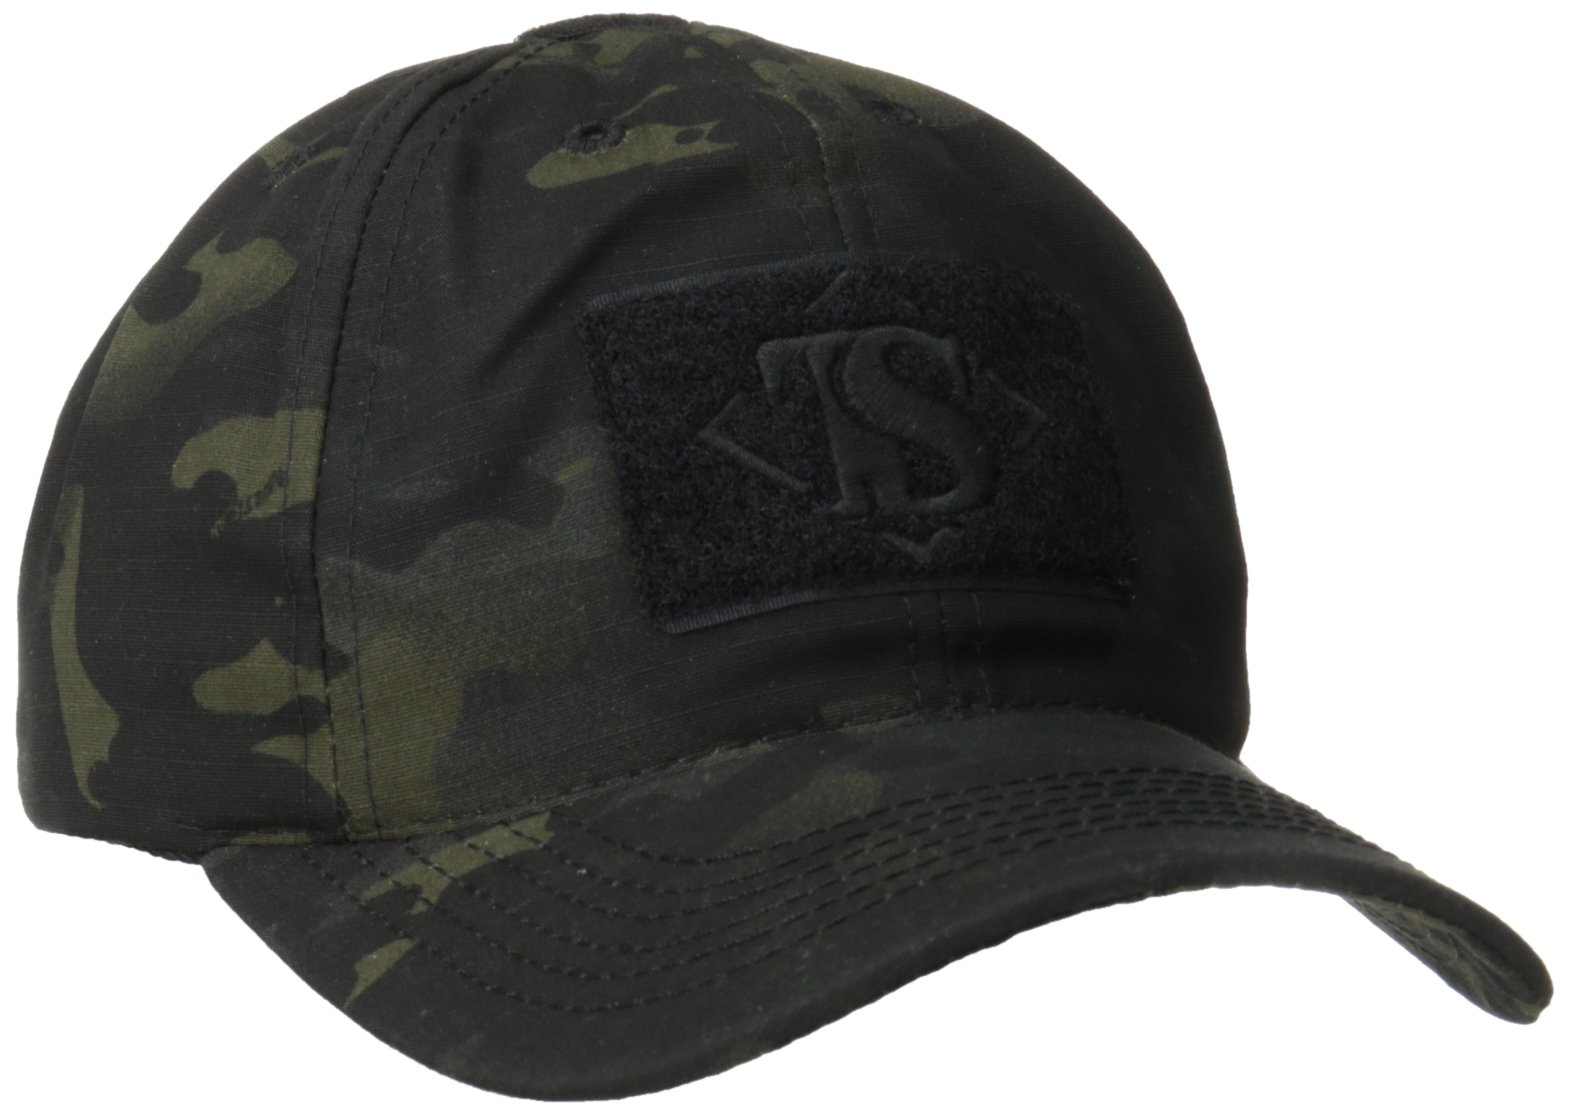 TRU-SPEC Contractor Cap, Multicam Black, One Size